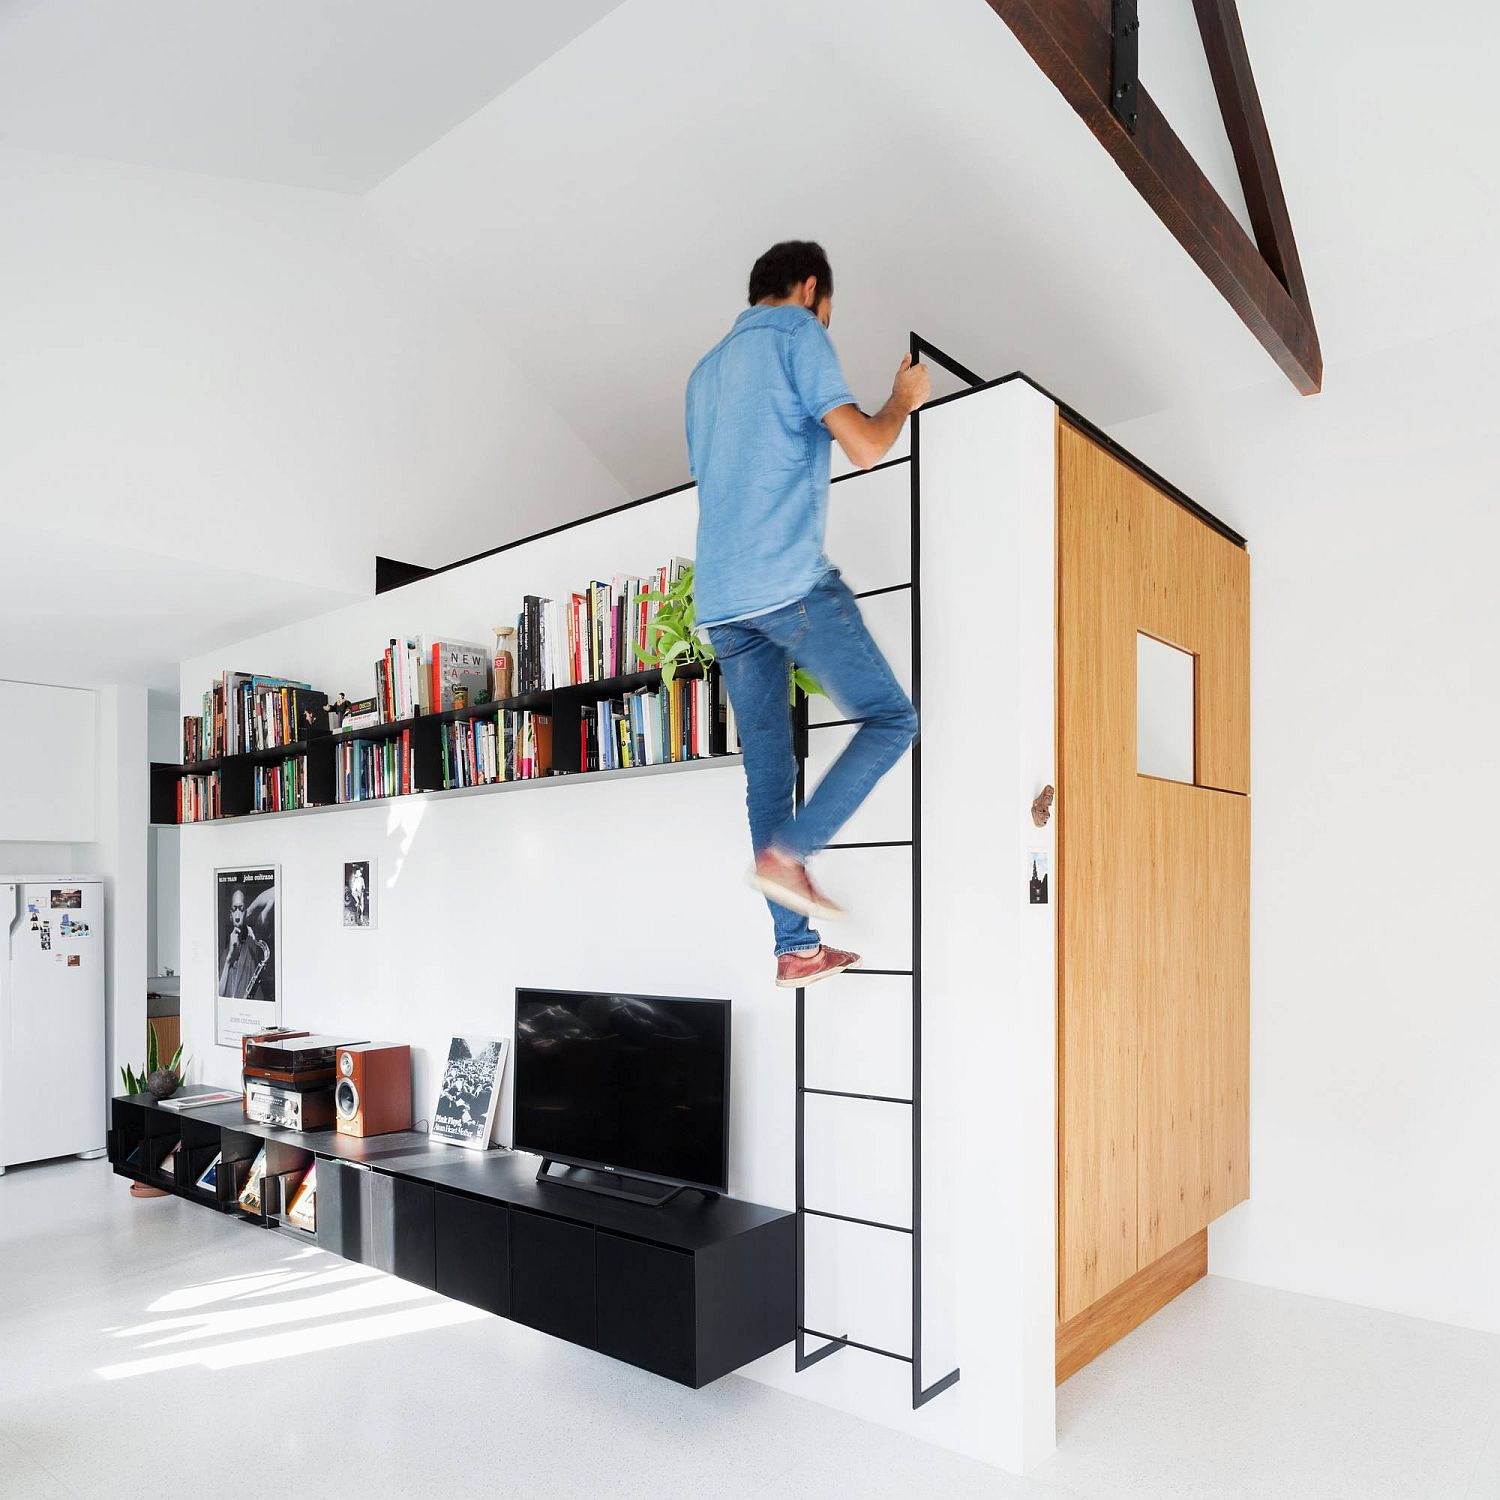 Space-above-the-bathroom-unit-used-as-a-loft-bedroom-inside-this-Sao-Paulo-apartment